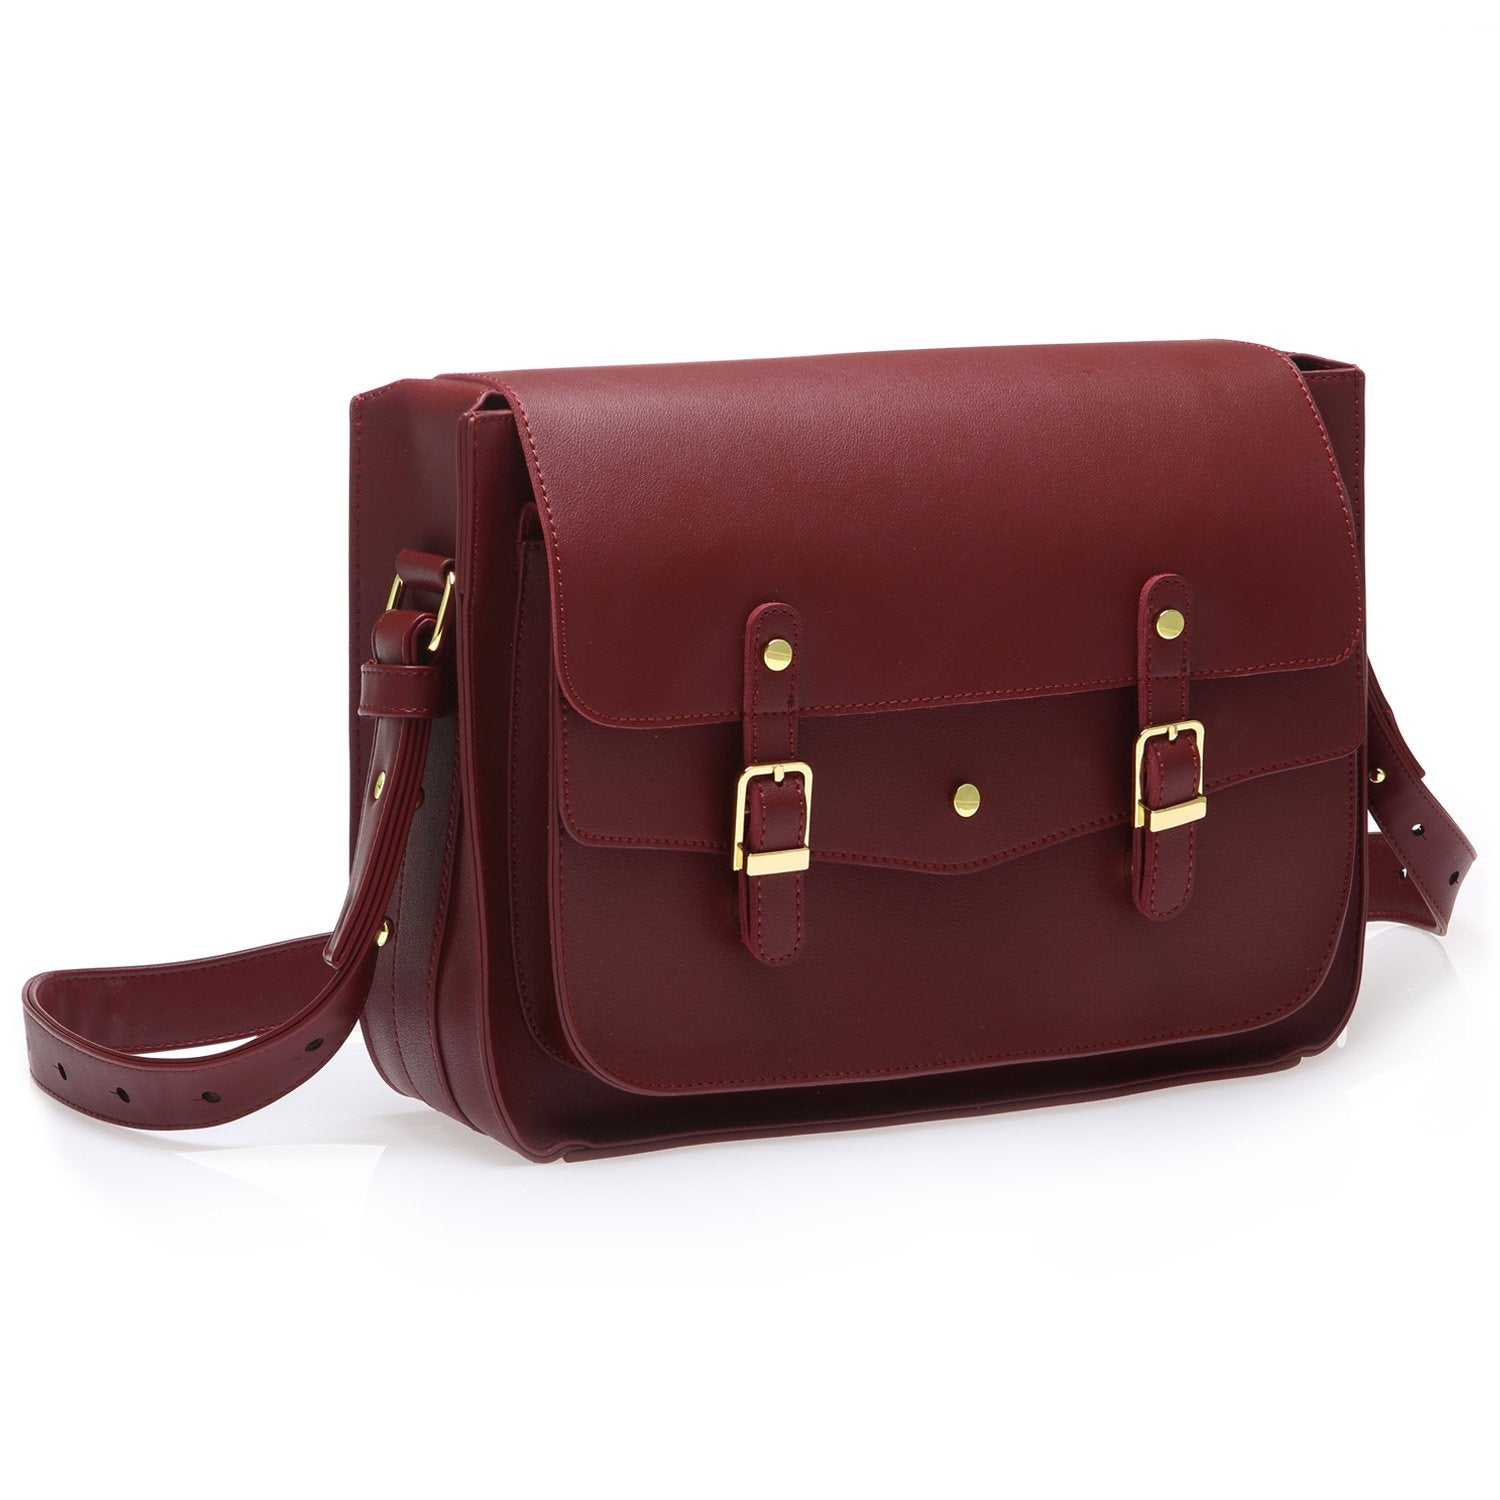 ESATCH L - WINE RED